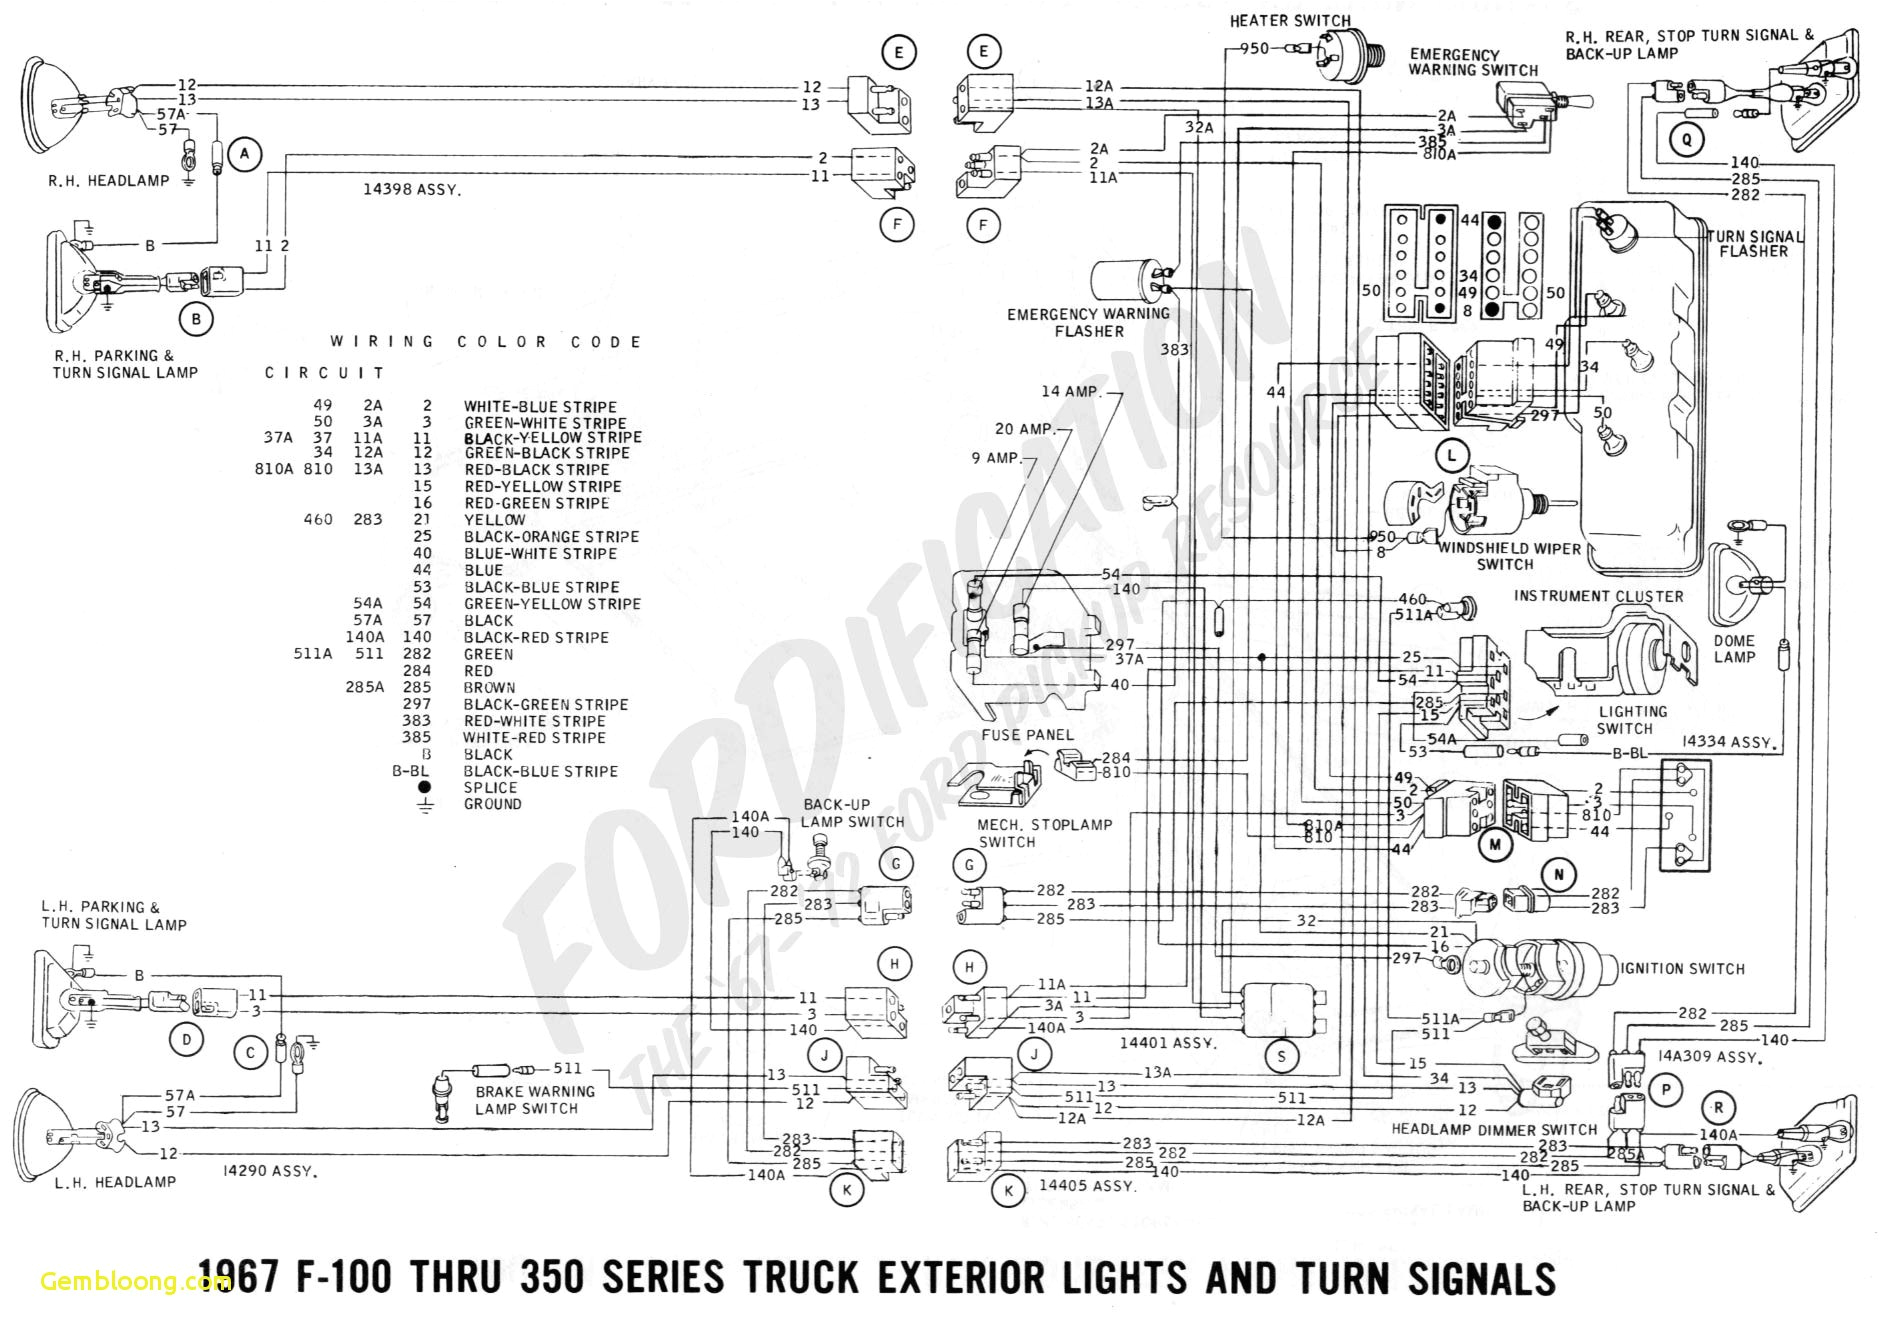 Chevy Truck Wiring Diagrams Free Free Vehicle Wiring Diagrams Wiring Diagram Database